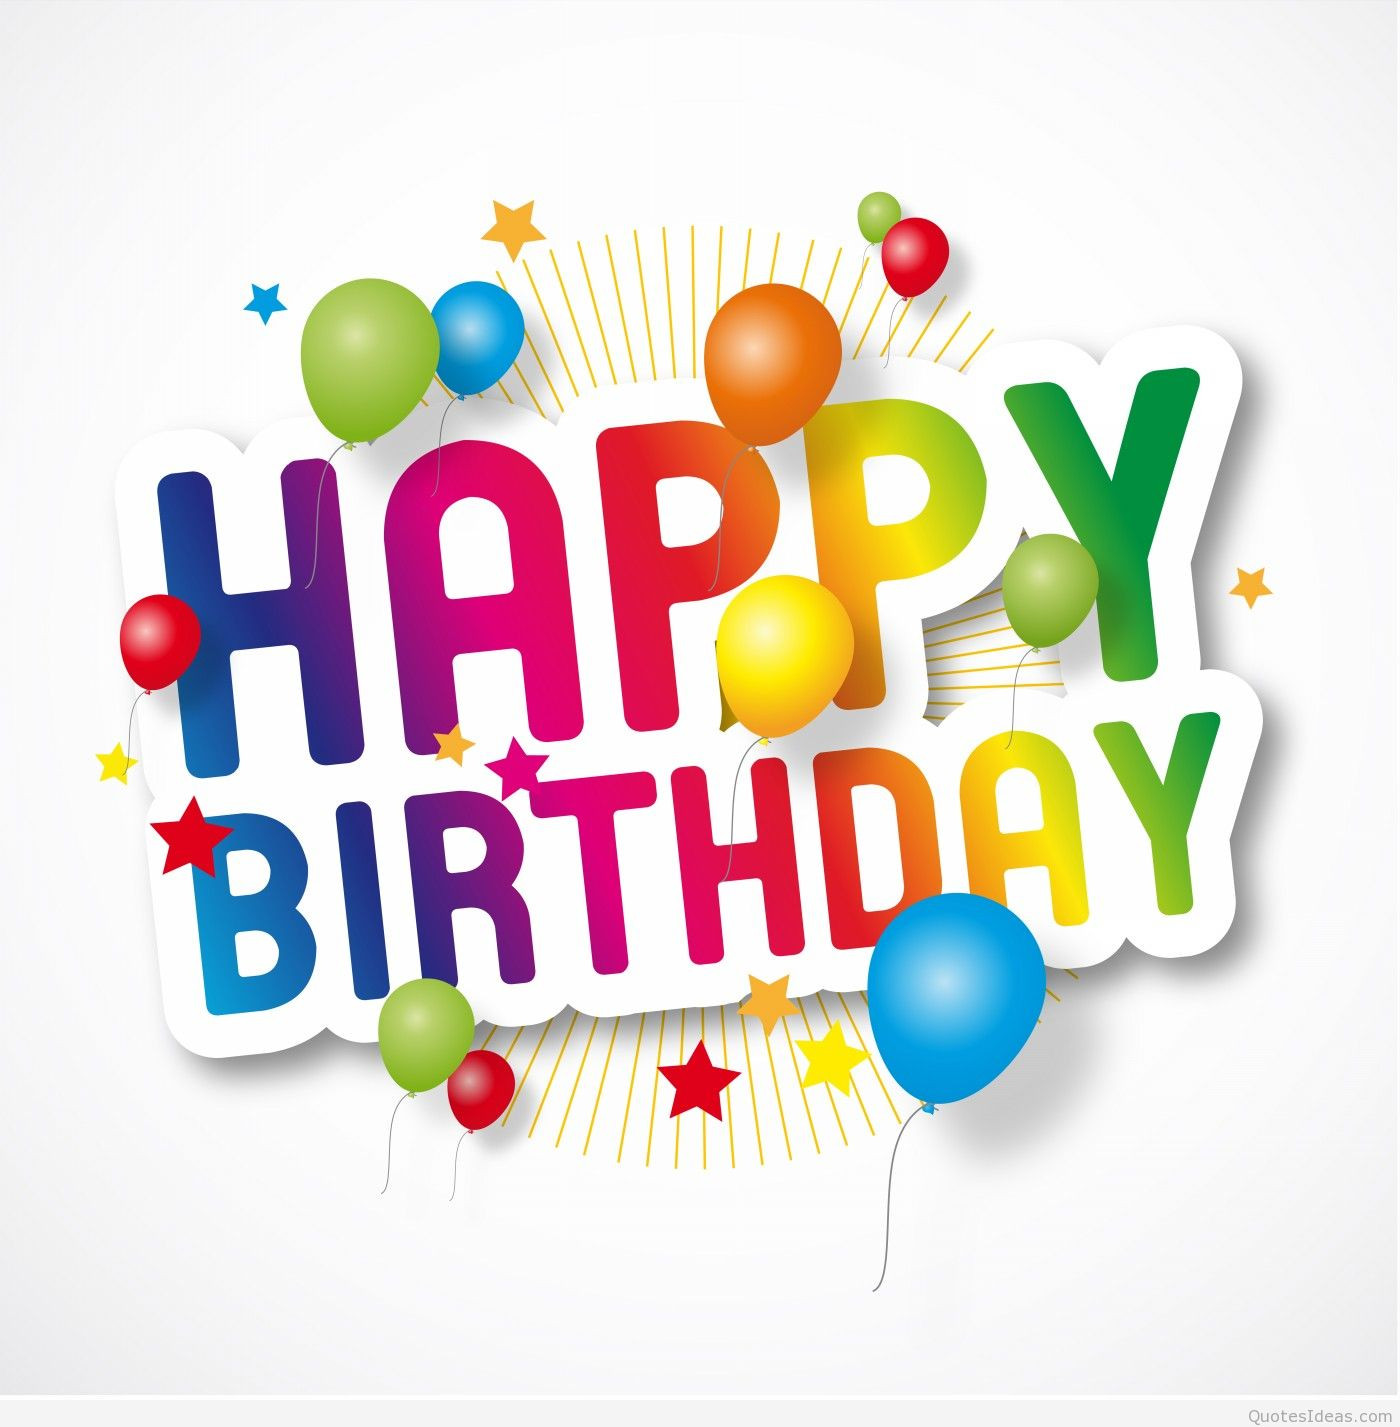 Best ideas about How To Wish Happy Birthday . Save or Pin Happy birthday cards wishes messages 2015 2016 Now.